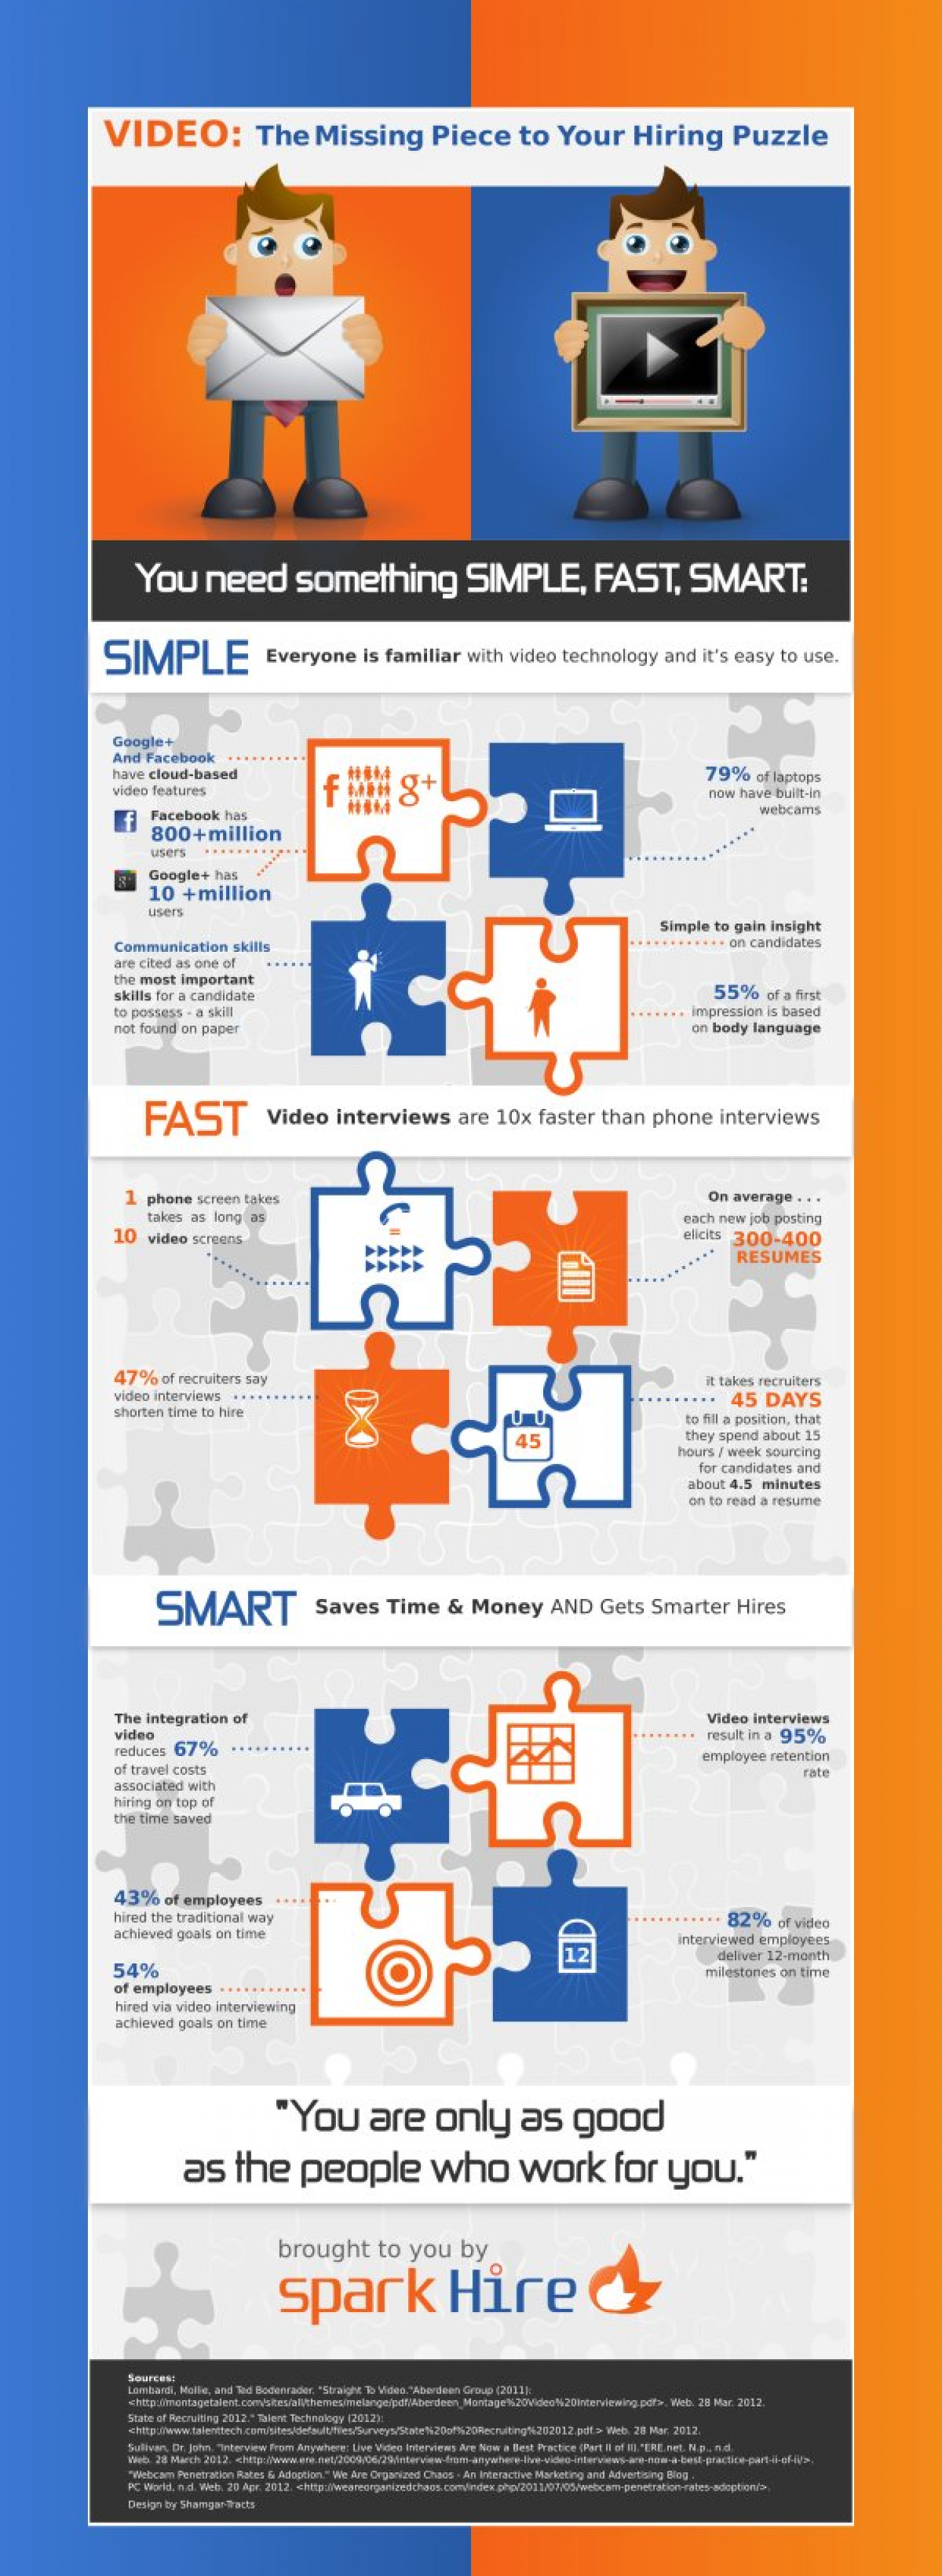 The Missing Piece to Your Hiring Puzzle Infographic